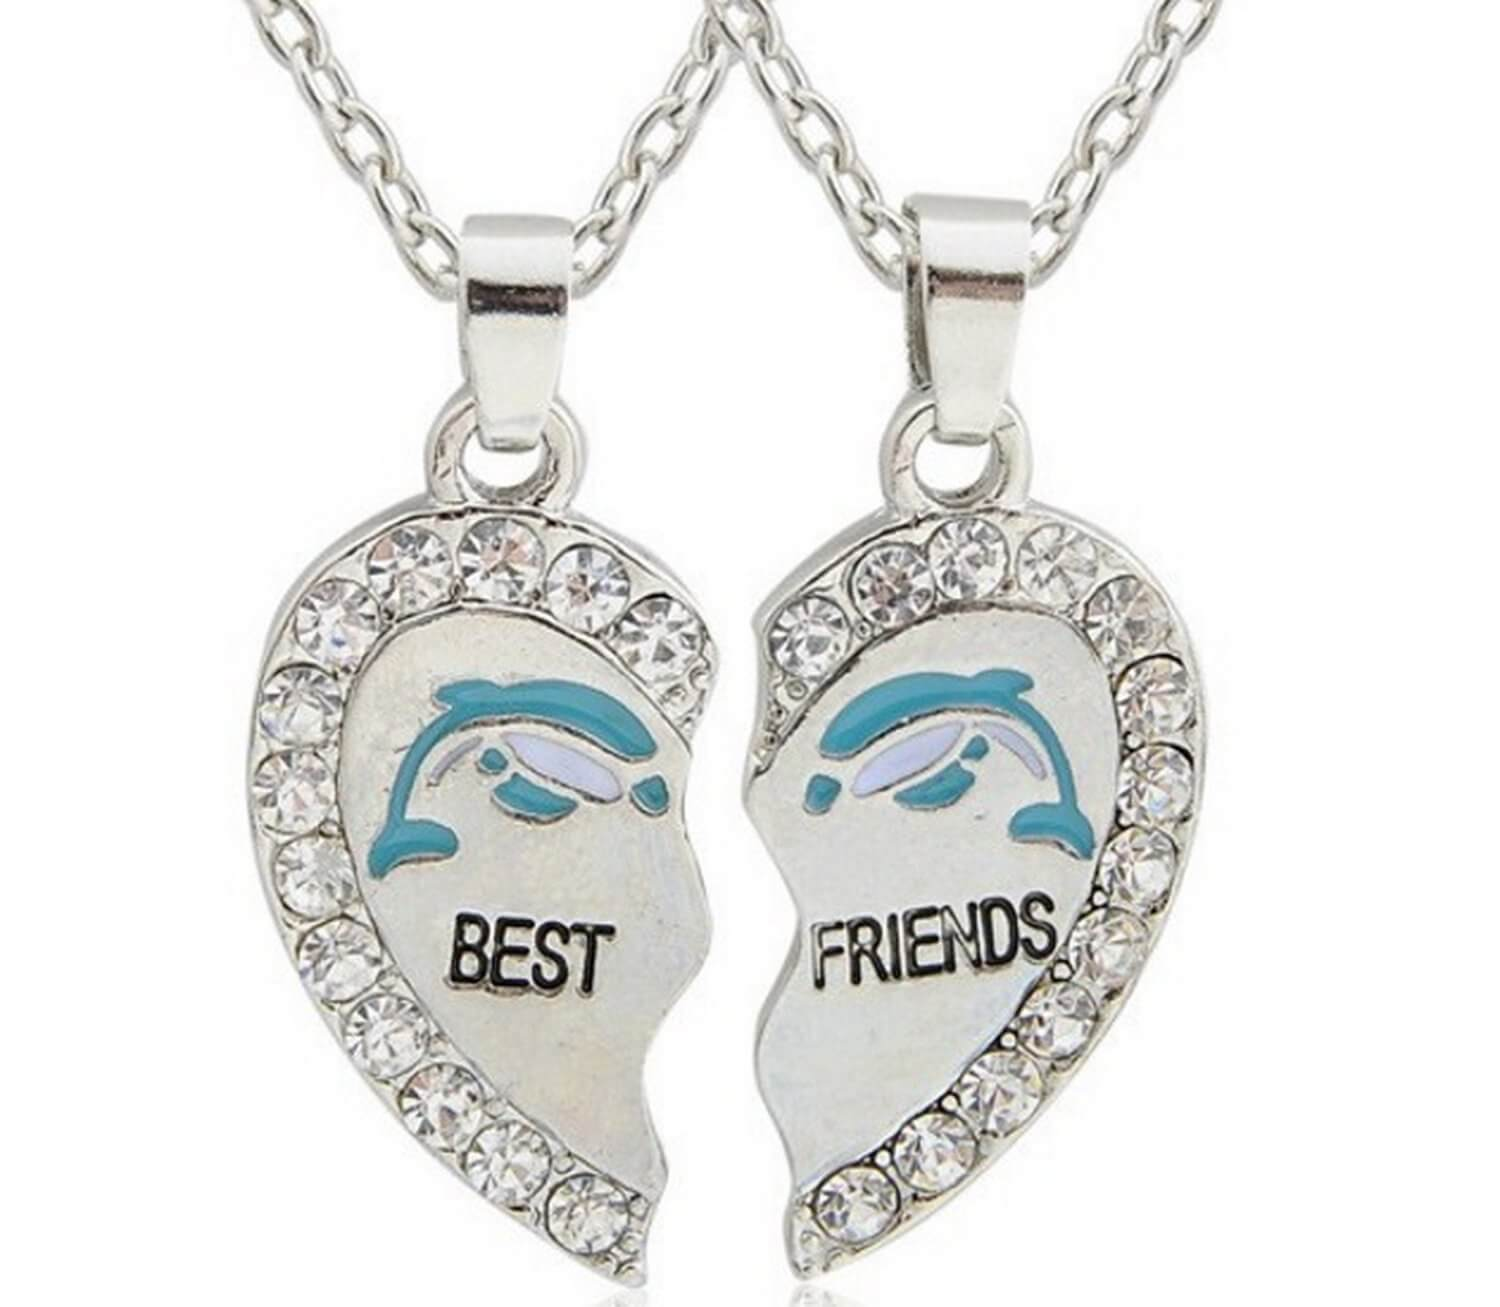 hallmark sterling cubic gifts fashion jewelry lockets silver accessories with zirconia image locket and root source necklace friendship